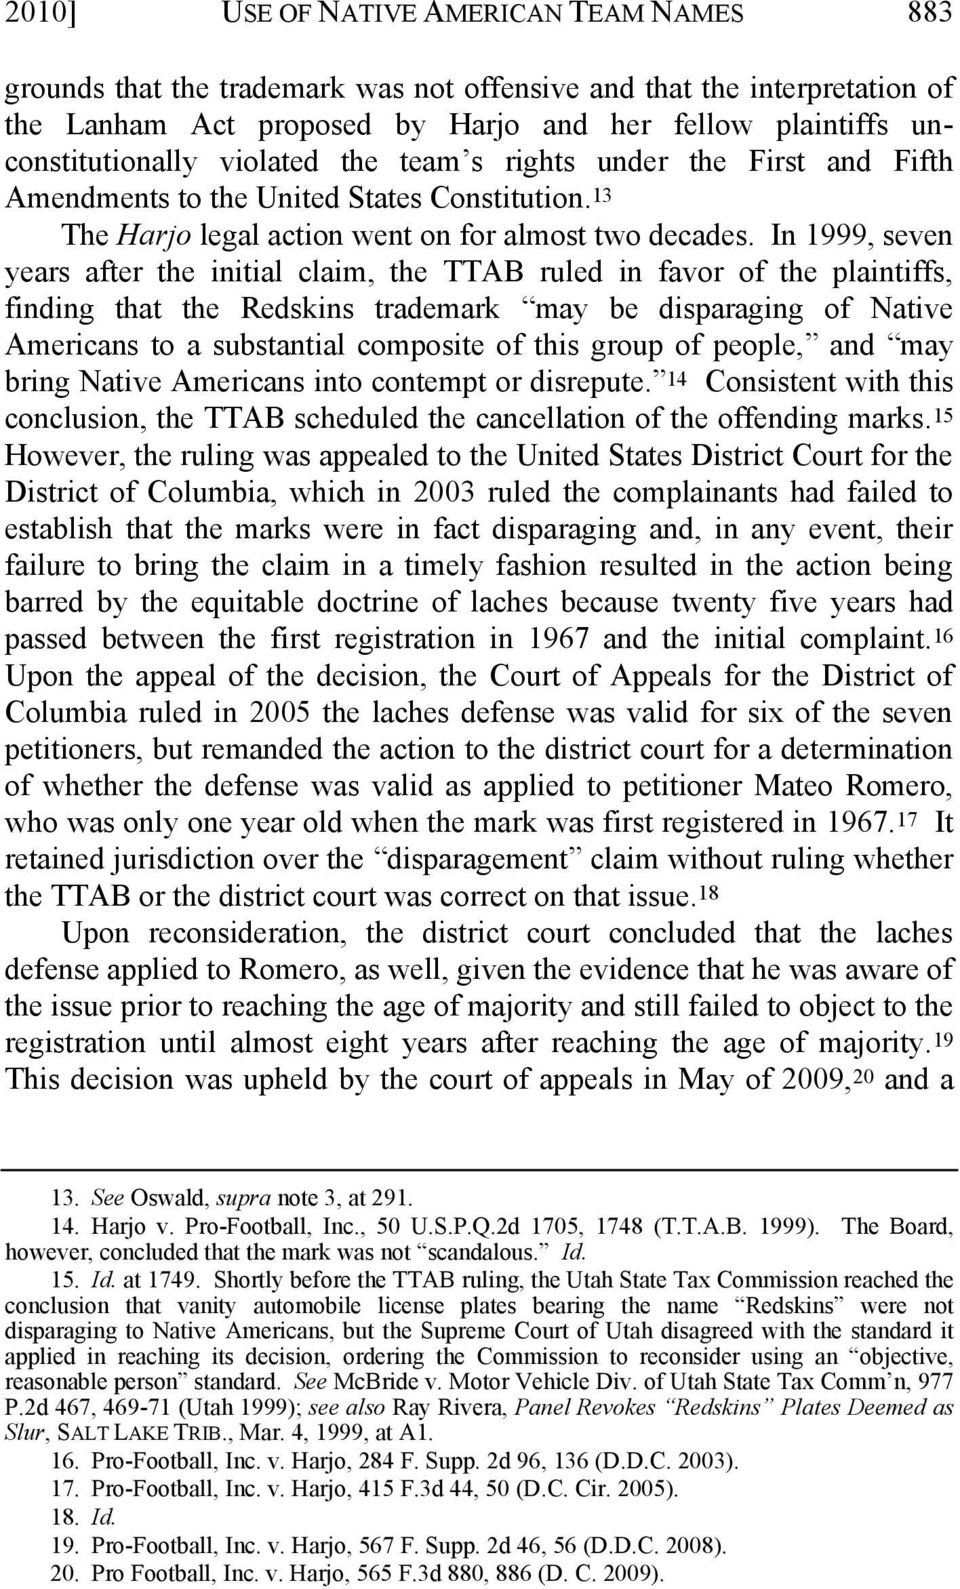 In 1999, seven years after the initial claim, the TTAB ruled in favor of the plaintiffs, finding that the Redskins trademark may be disparaging of Native Americans to a substantial composite of this